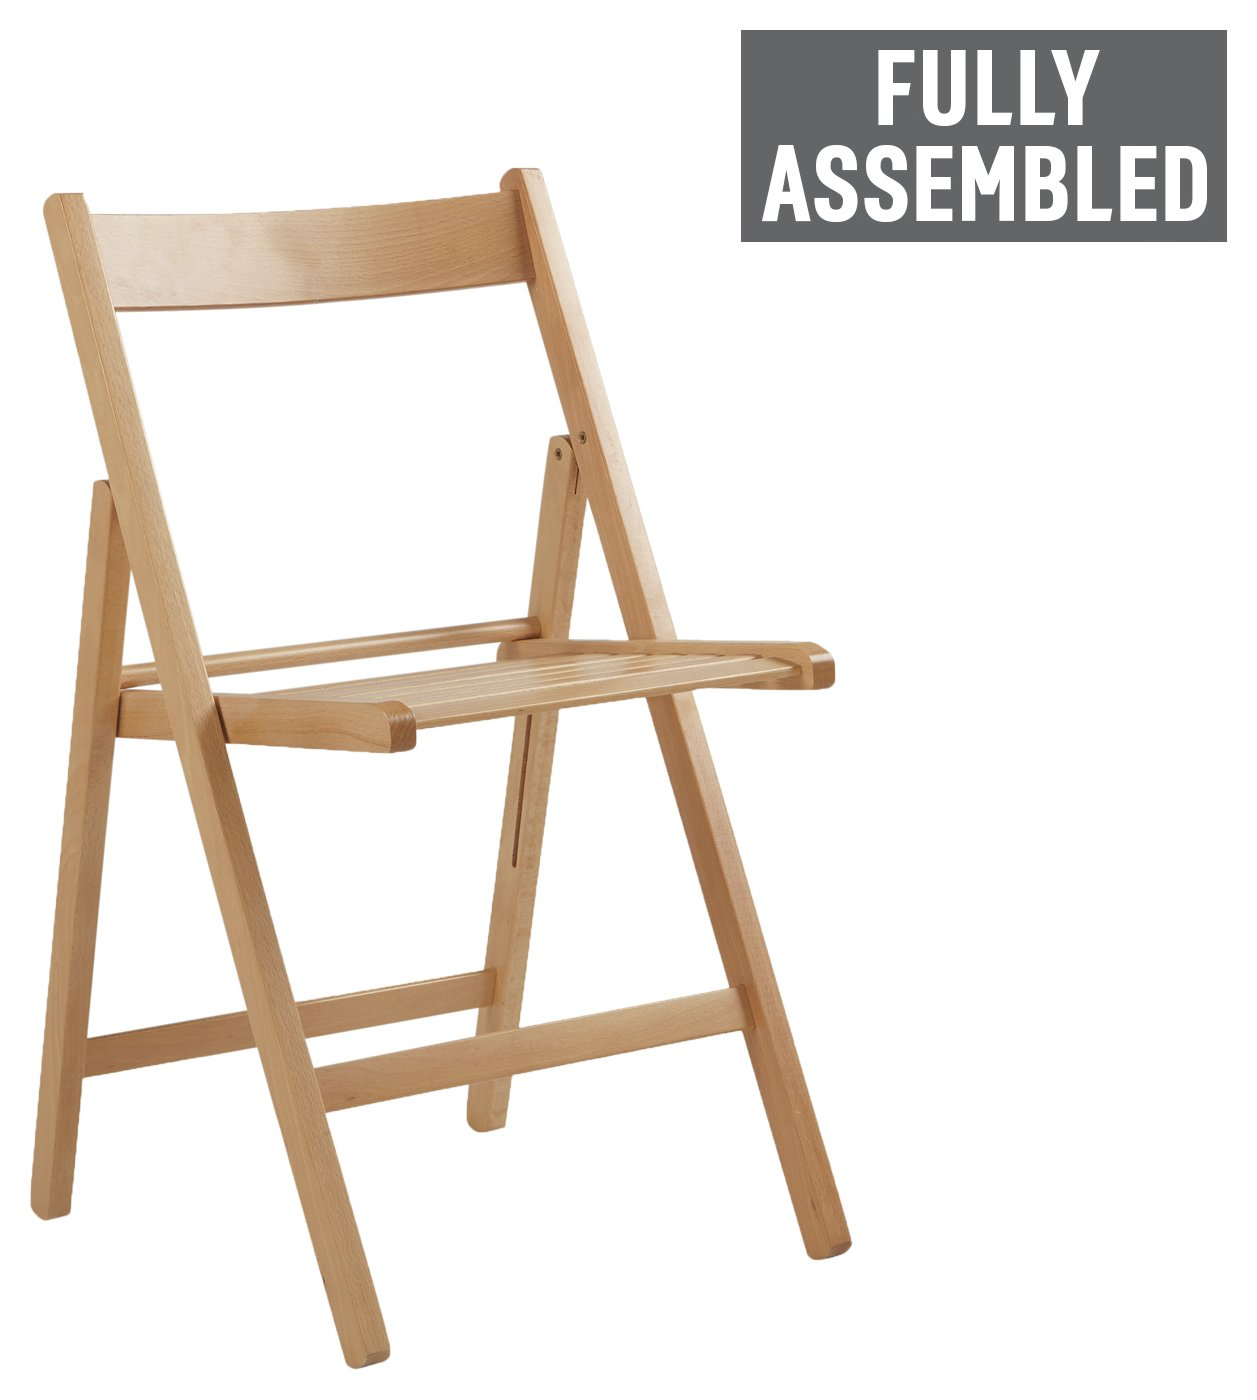 buy simple value wooden folding chair - natural at argos.co.uk